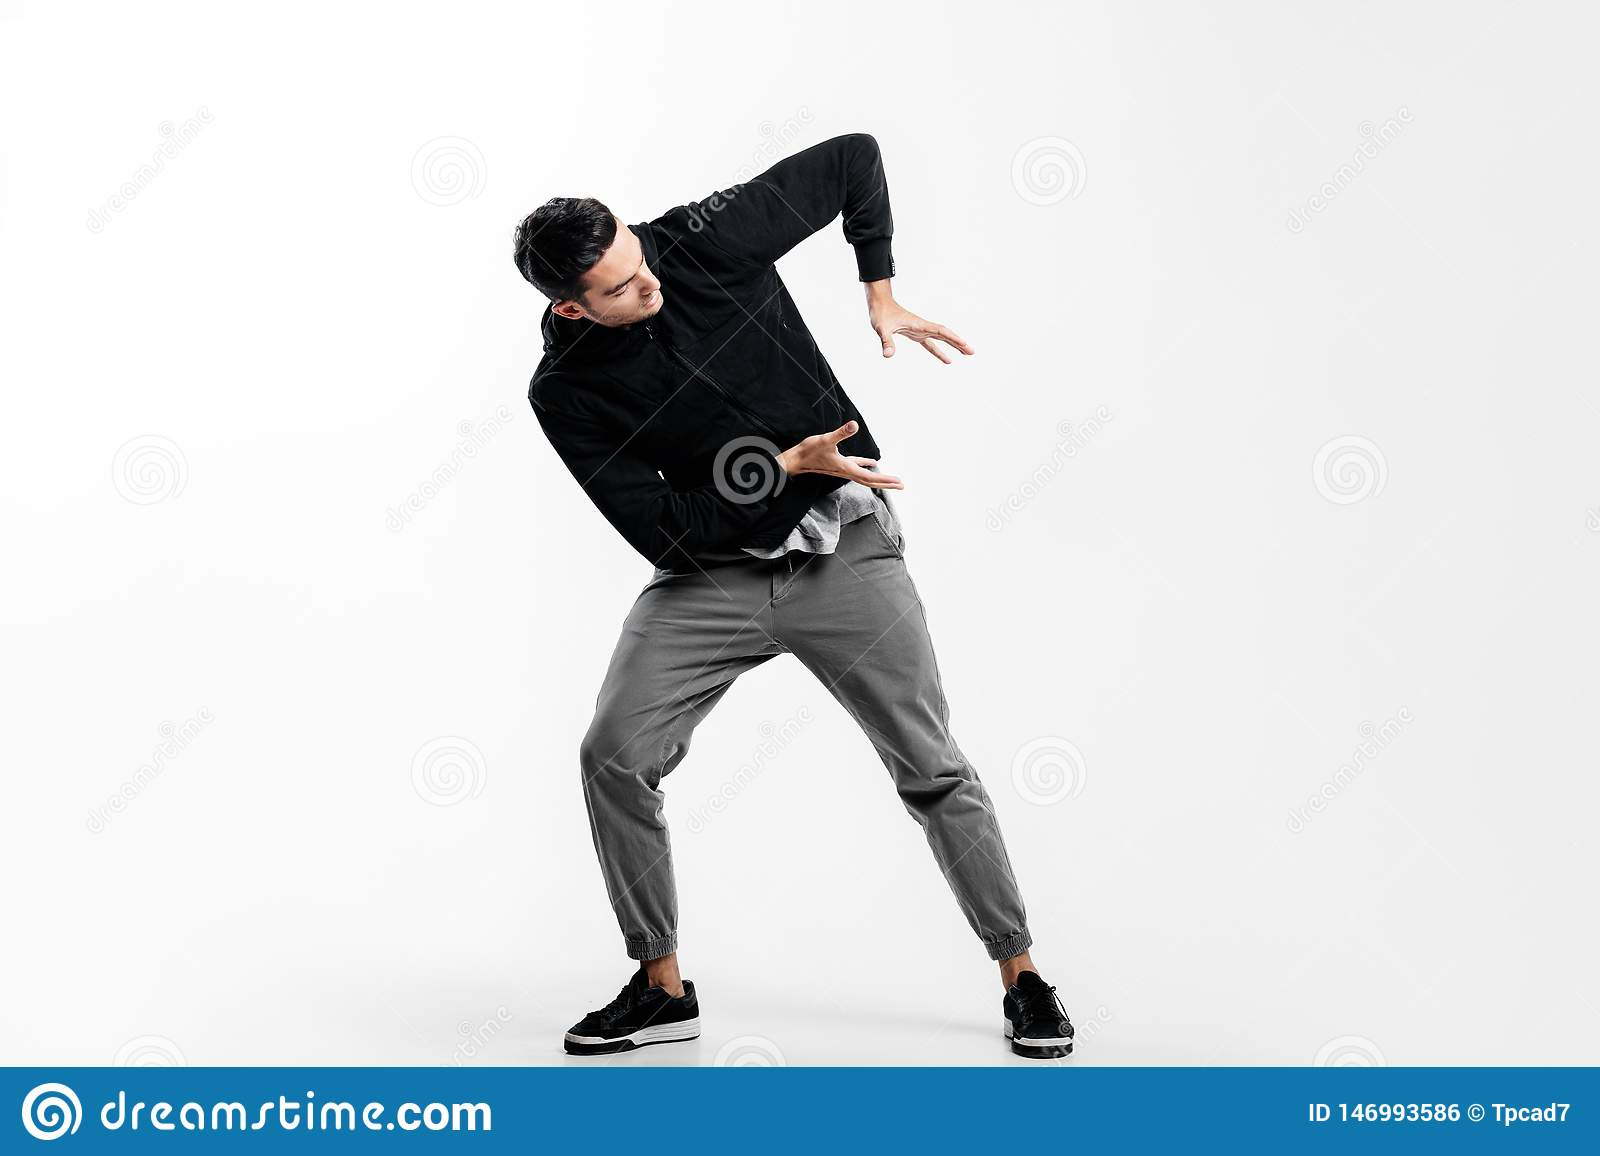 Dark-haired young man wearing a black sweatshirt and gray pants is dancing street dance. He makes stylized movements